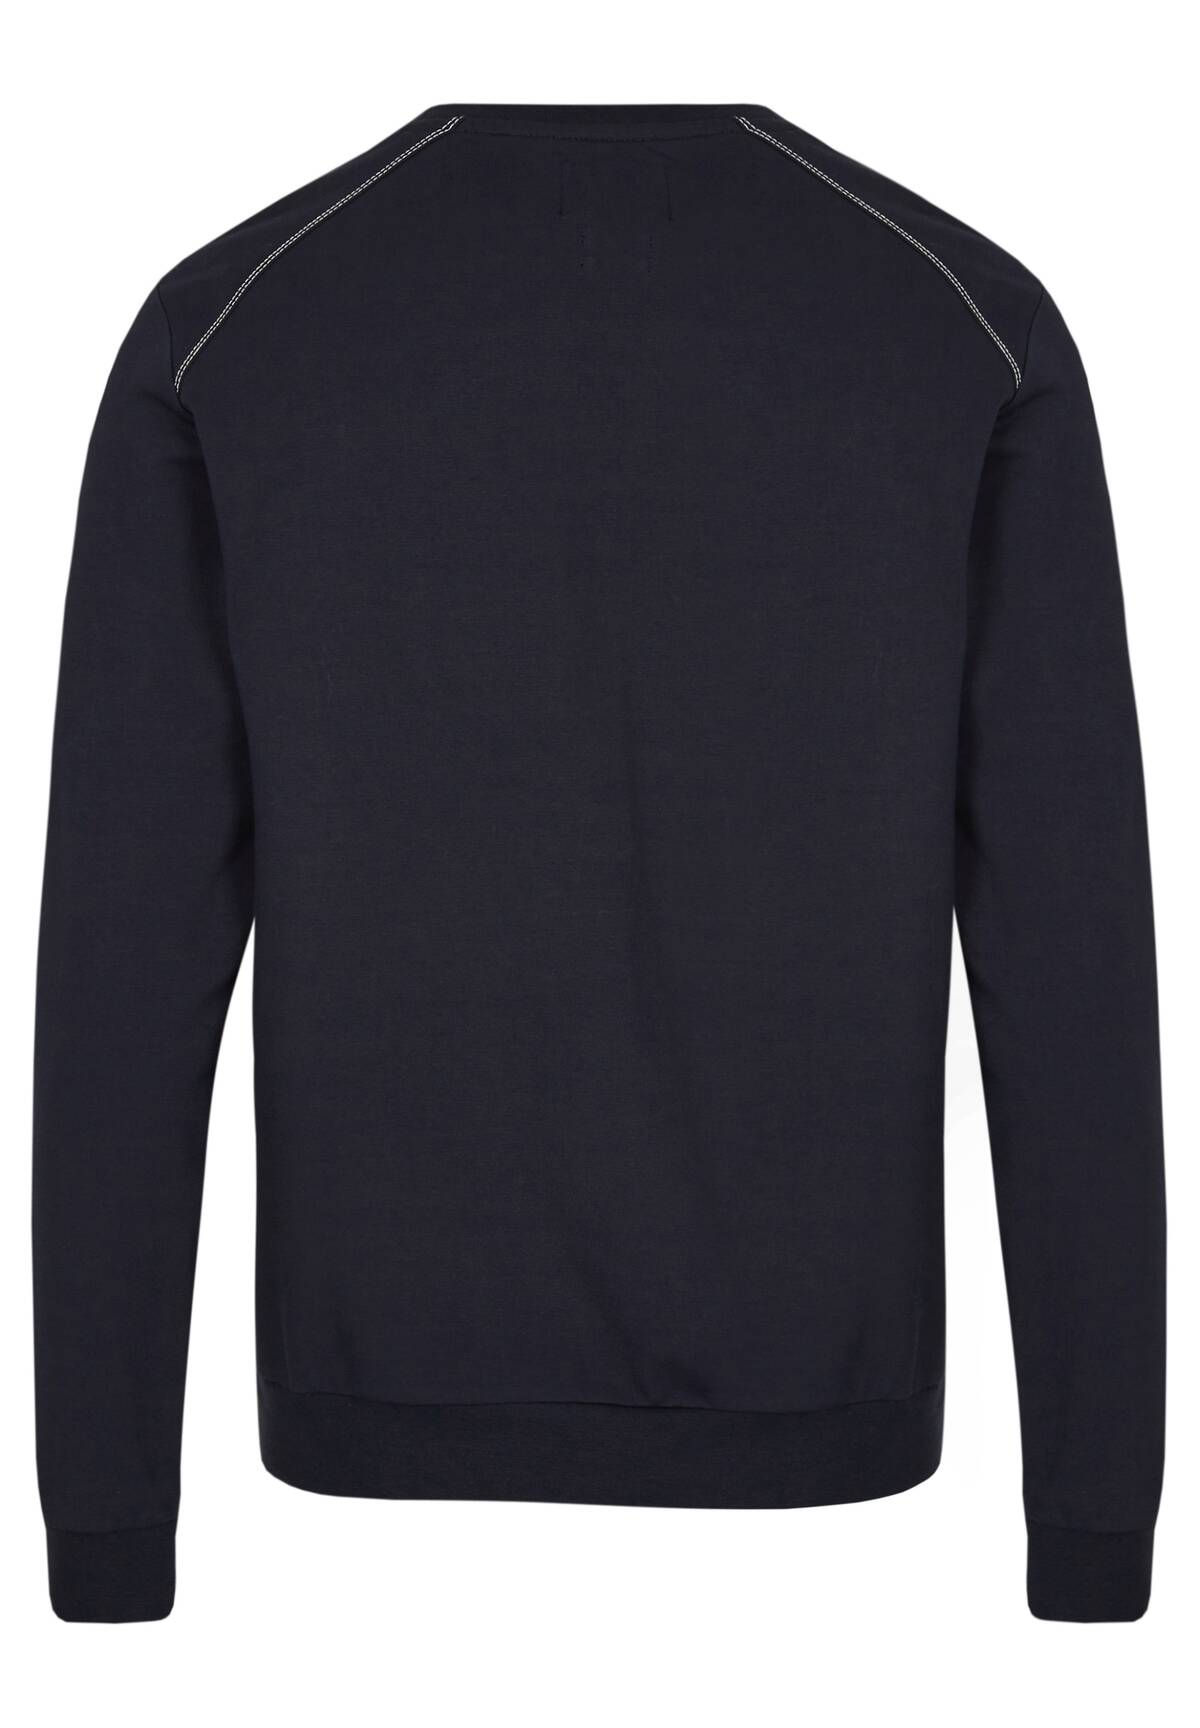 Sweat shirt HECHTER embossé /